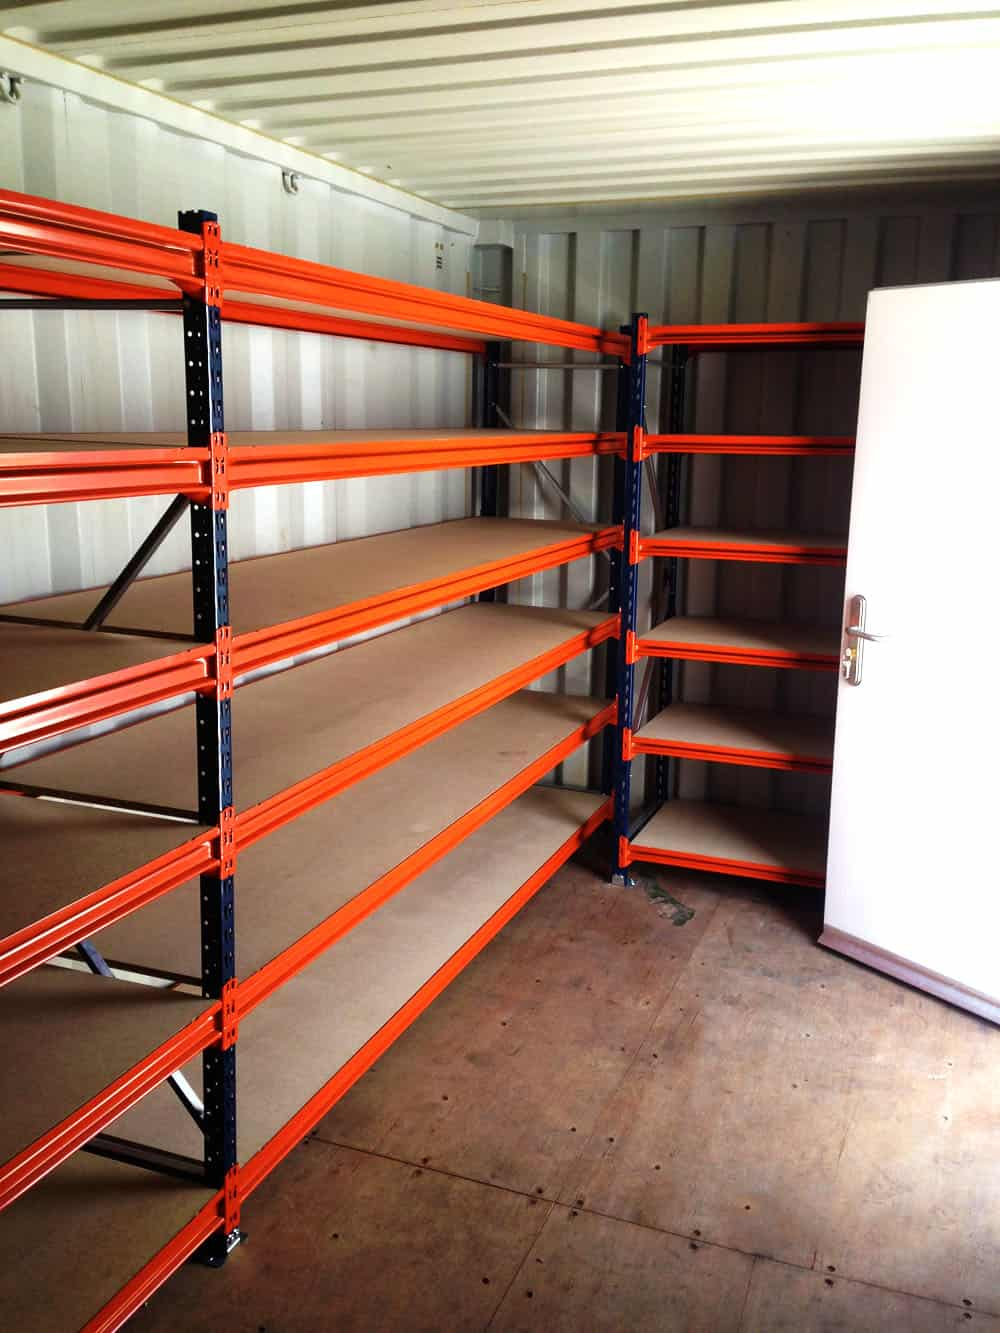 Shelving for shipping containers racking